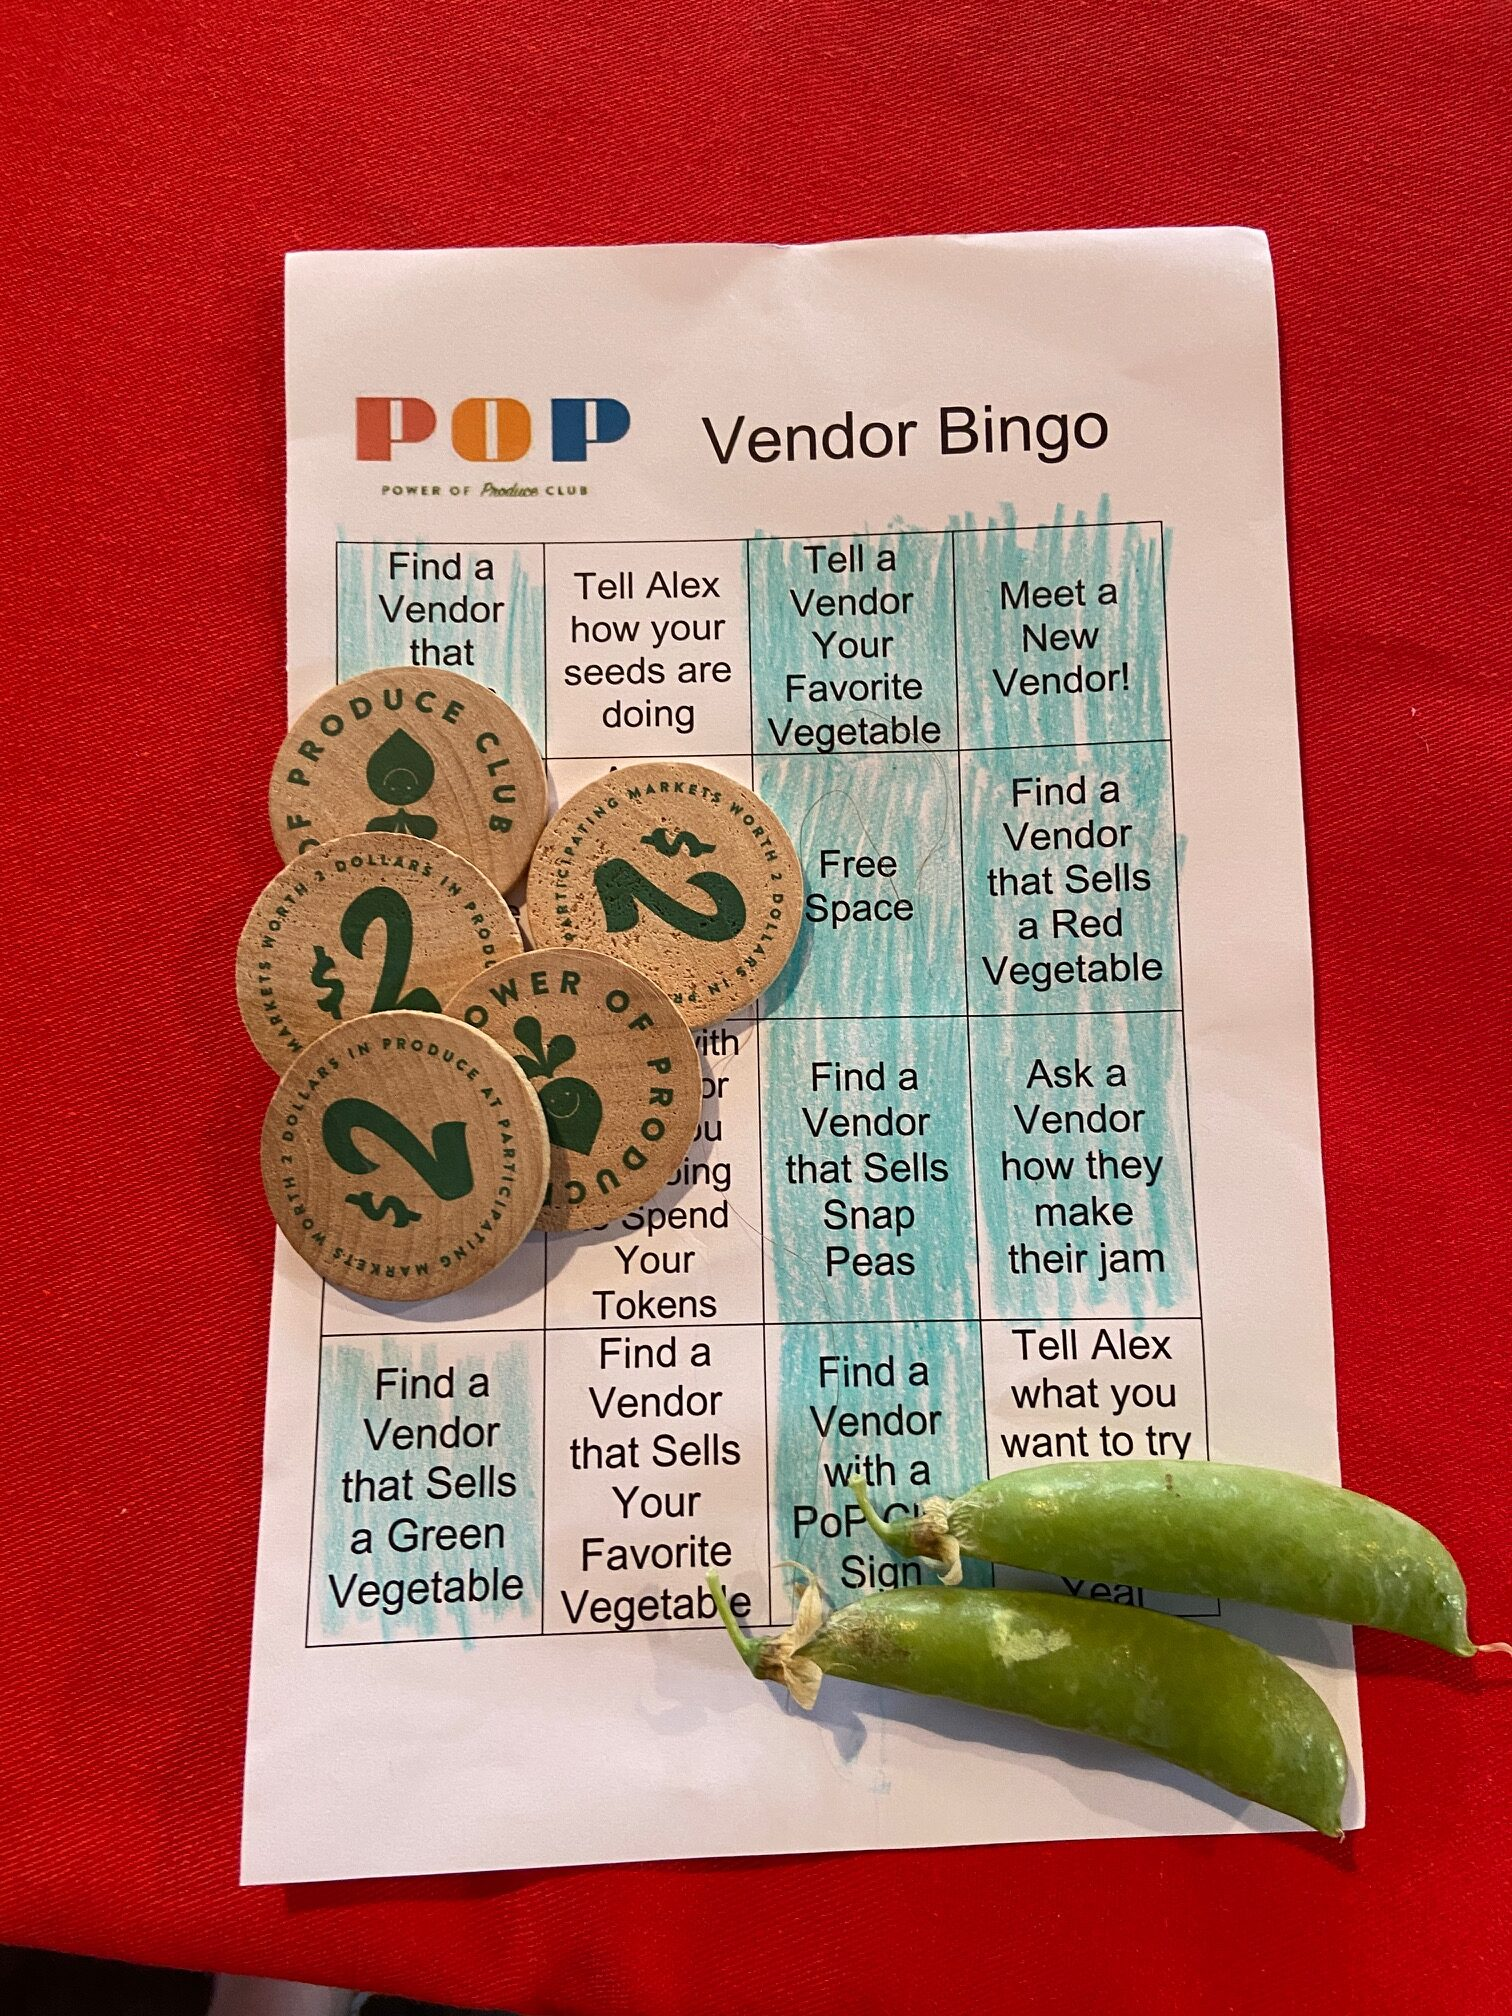 Completed Bingo card with tokens and peas